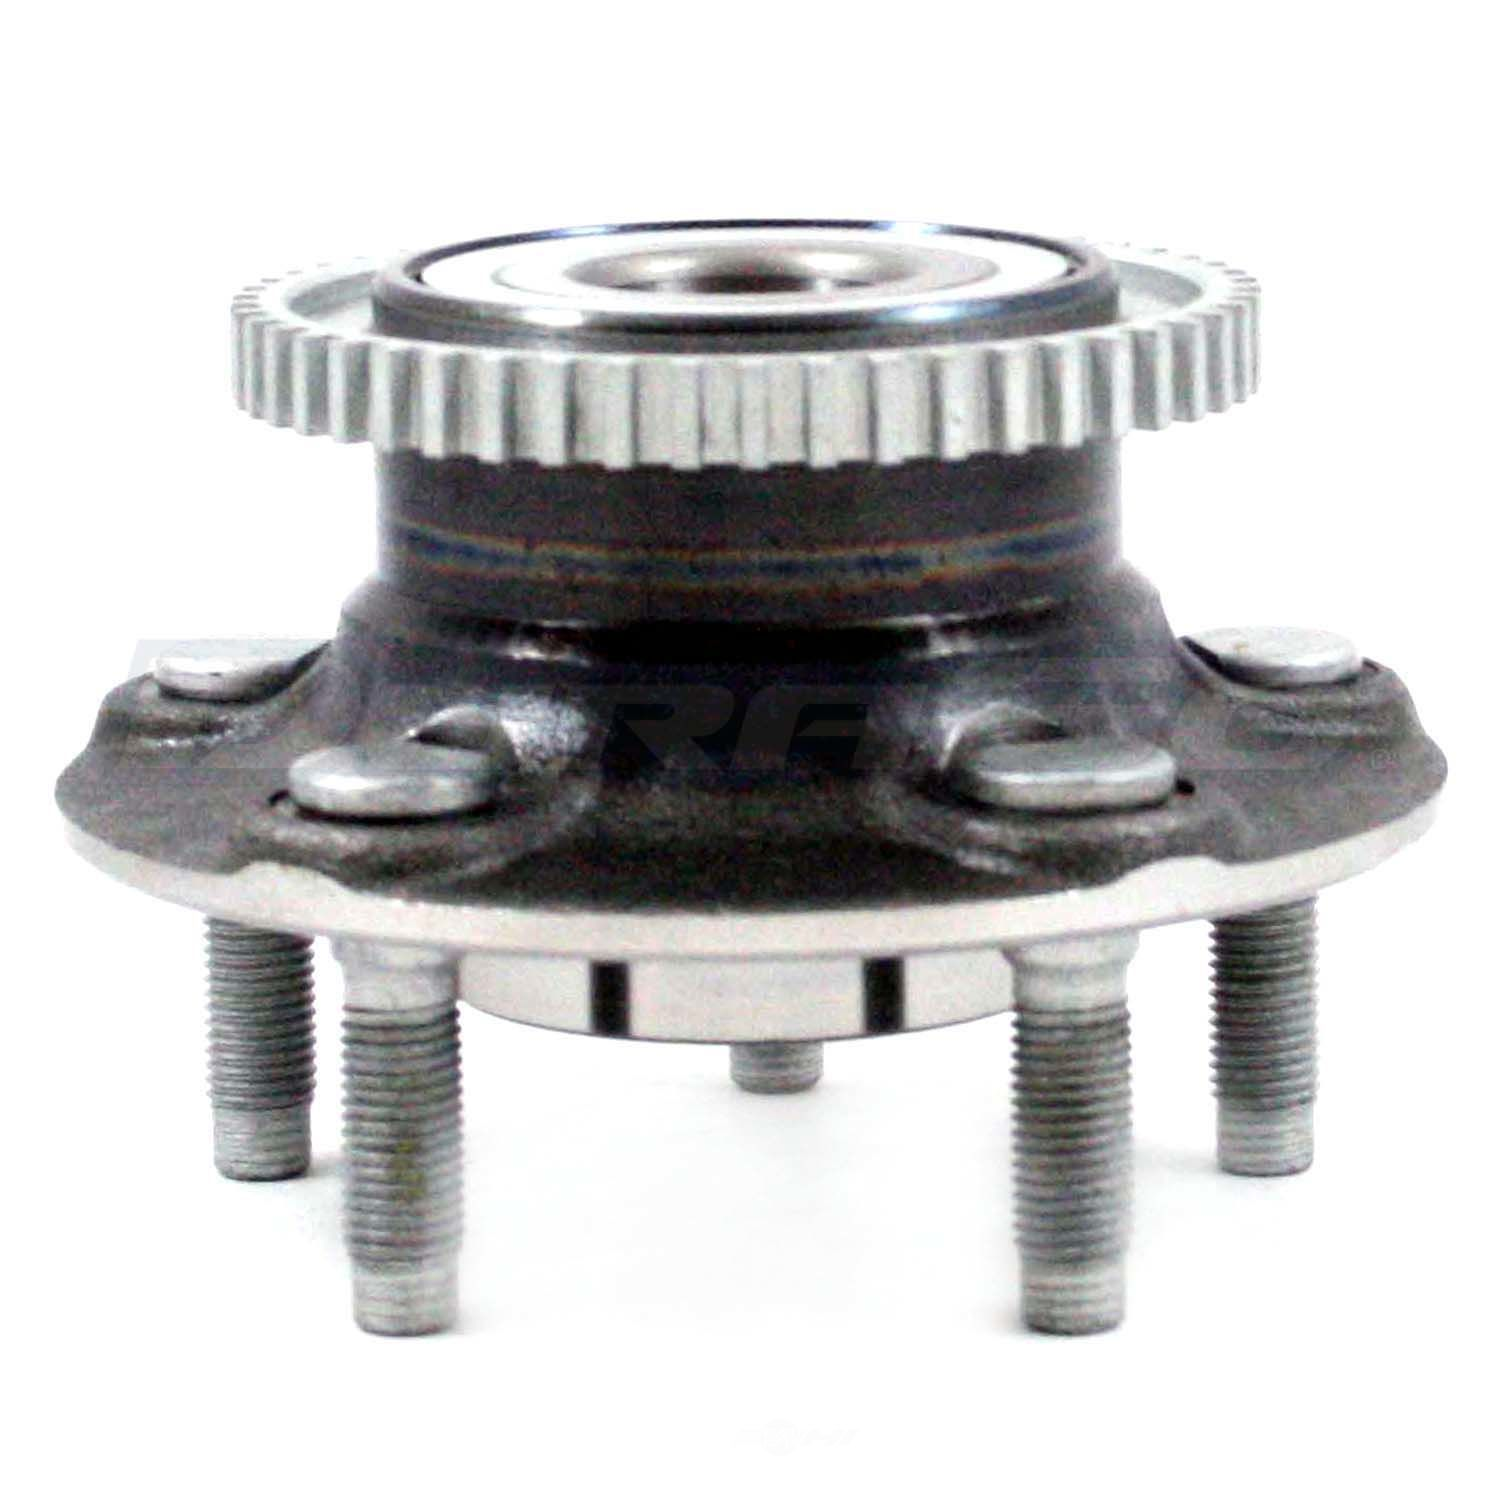 DURAGO - Axle Bearing and Hub Assembly - D48 295-12149